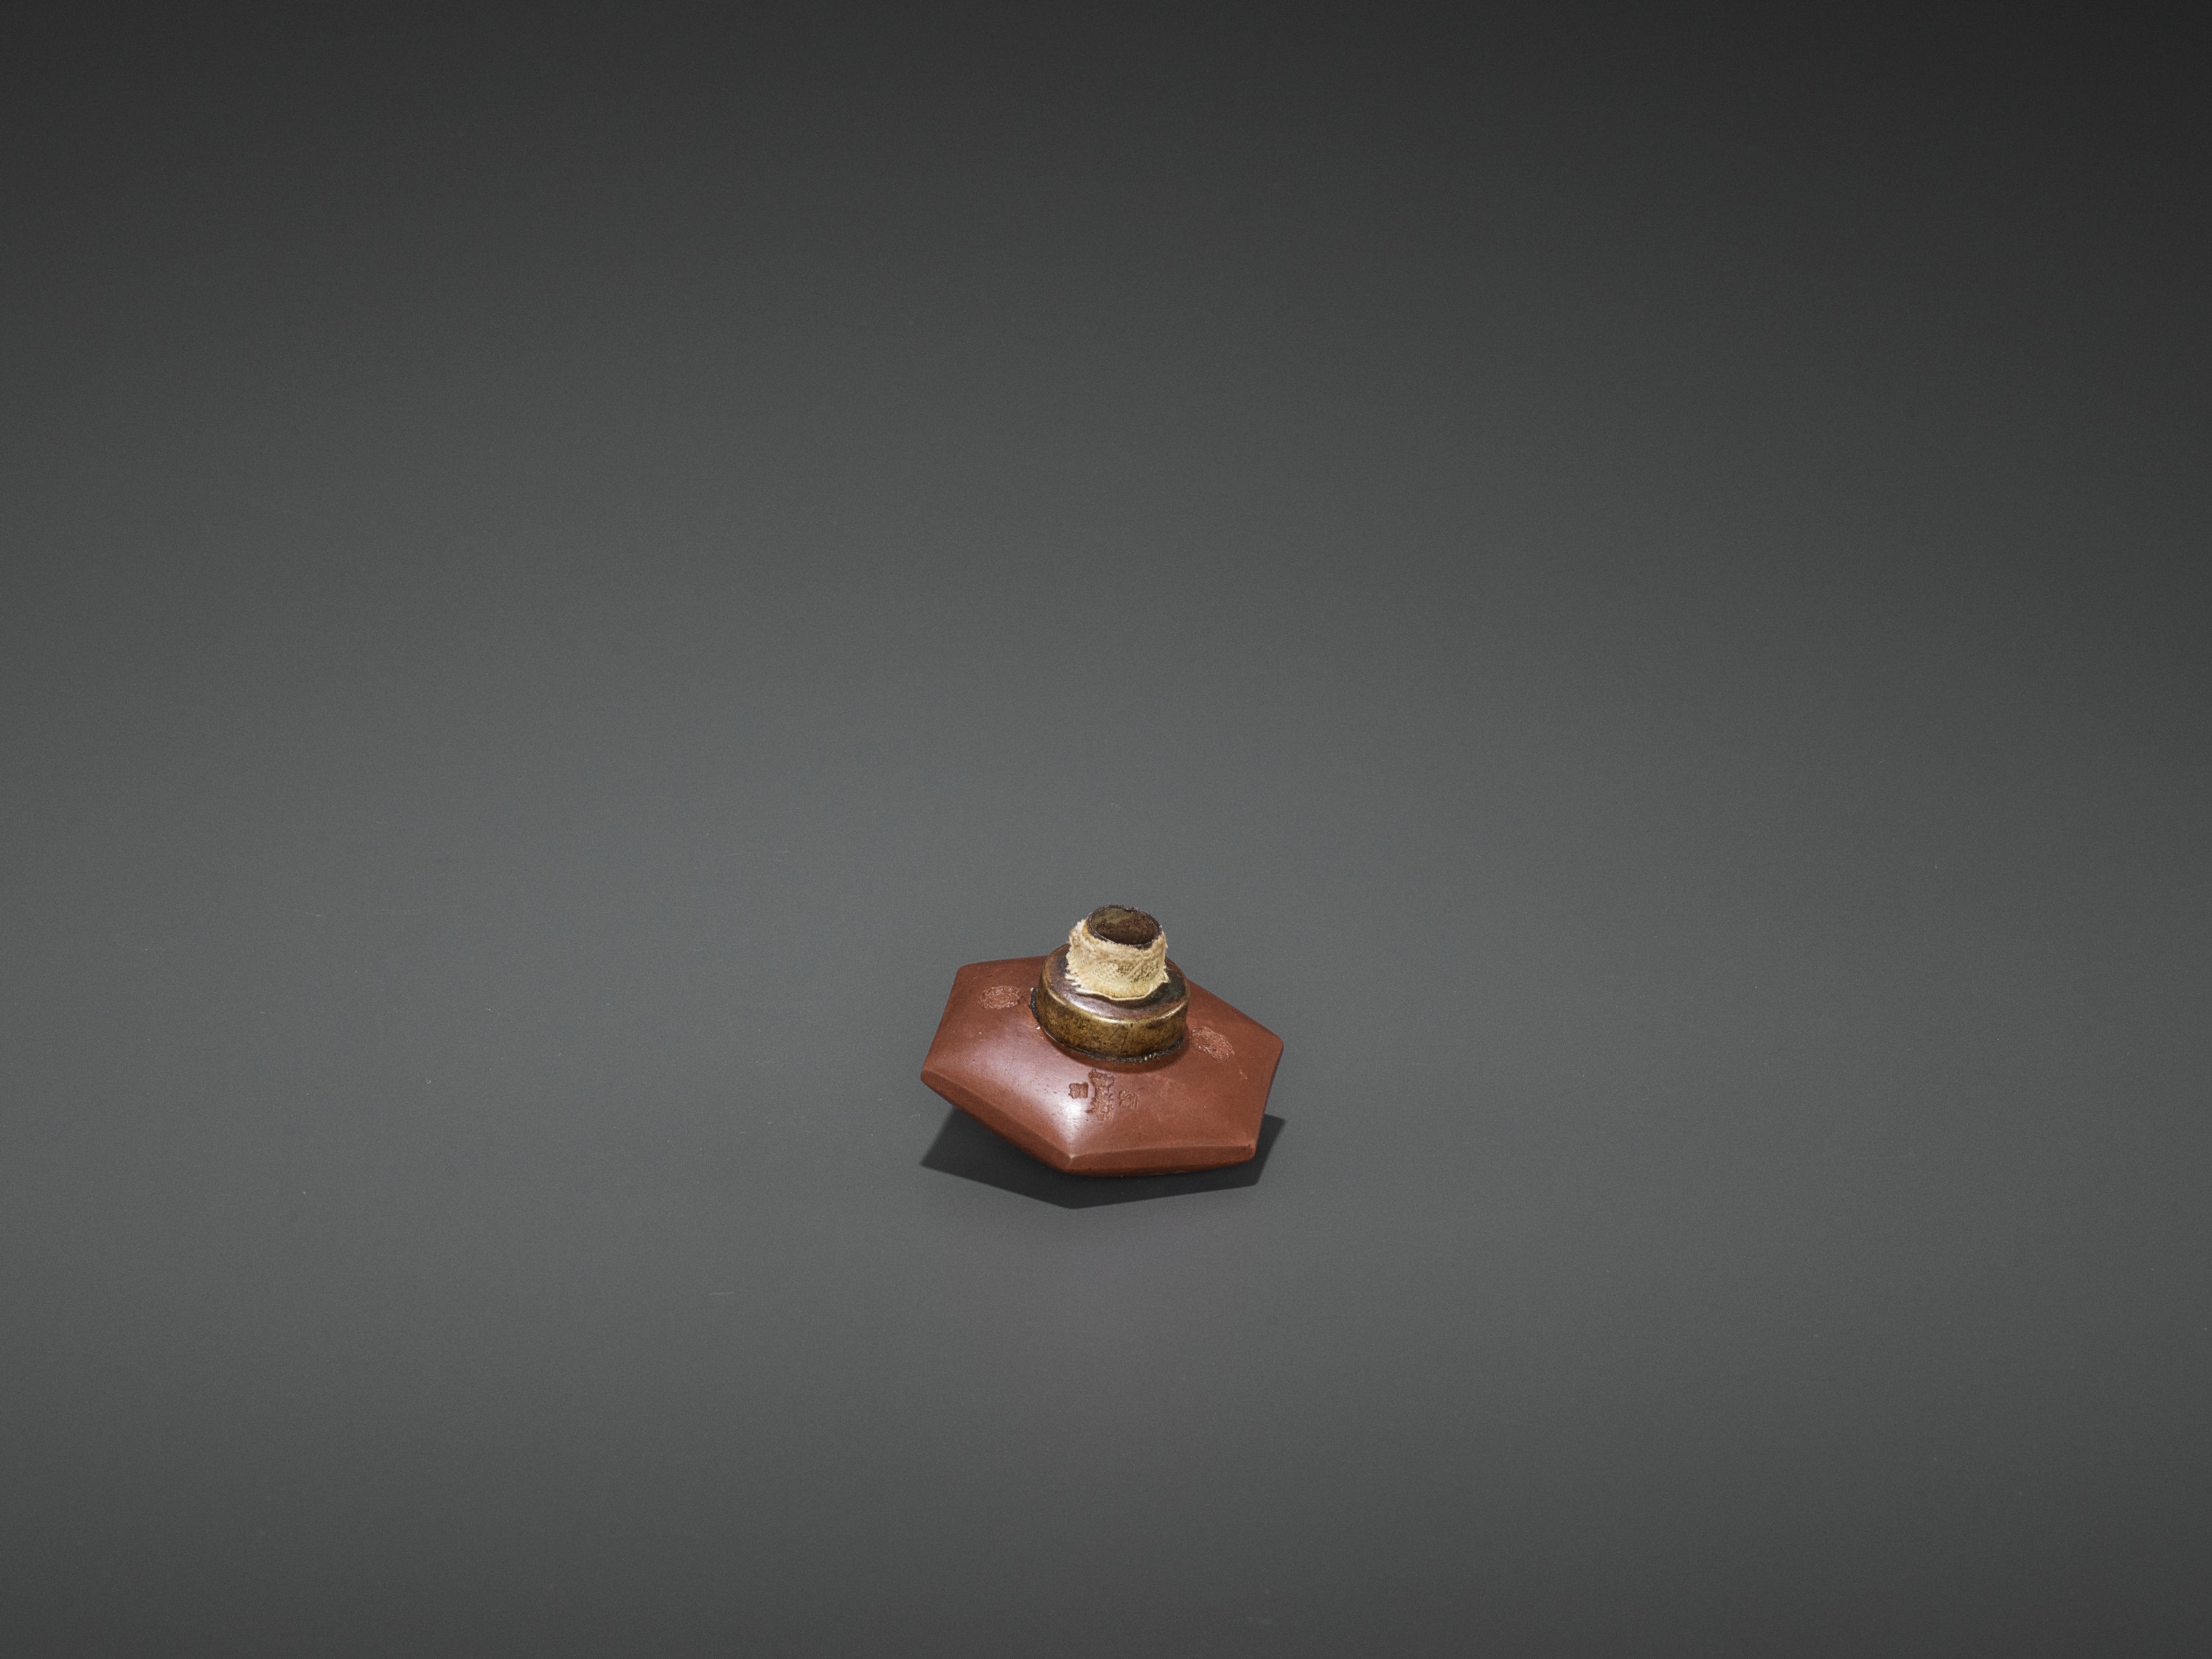 A BAMBOO OPIUM PIPE WITH HARDSTONE, SILVER AND YIXING CERAMIC FITTINGS, LATE QING TO REPUBLIC - Image 8 of 10